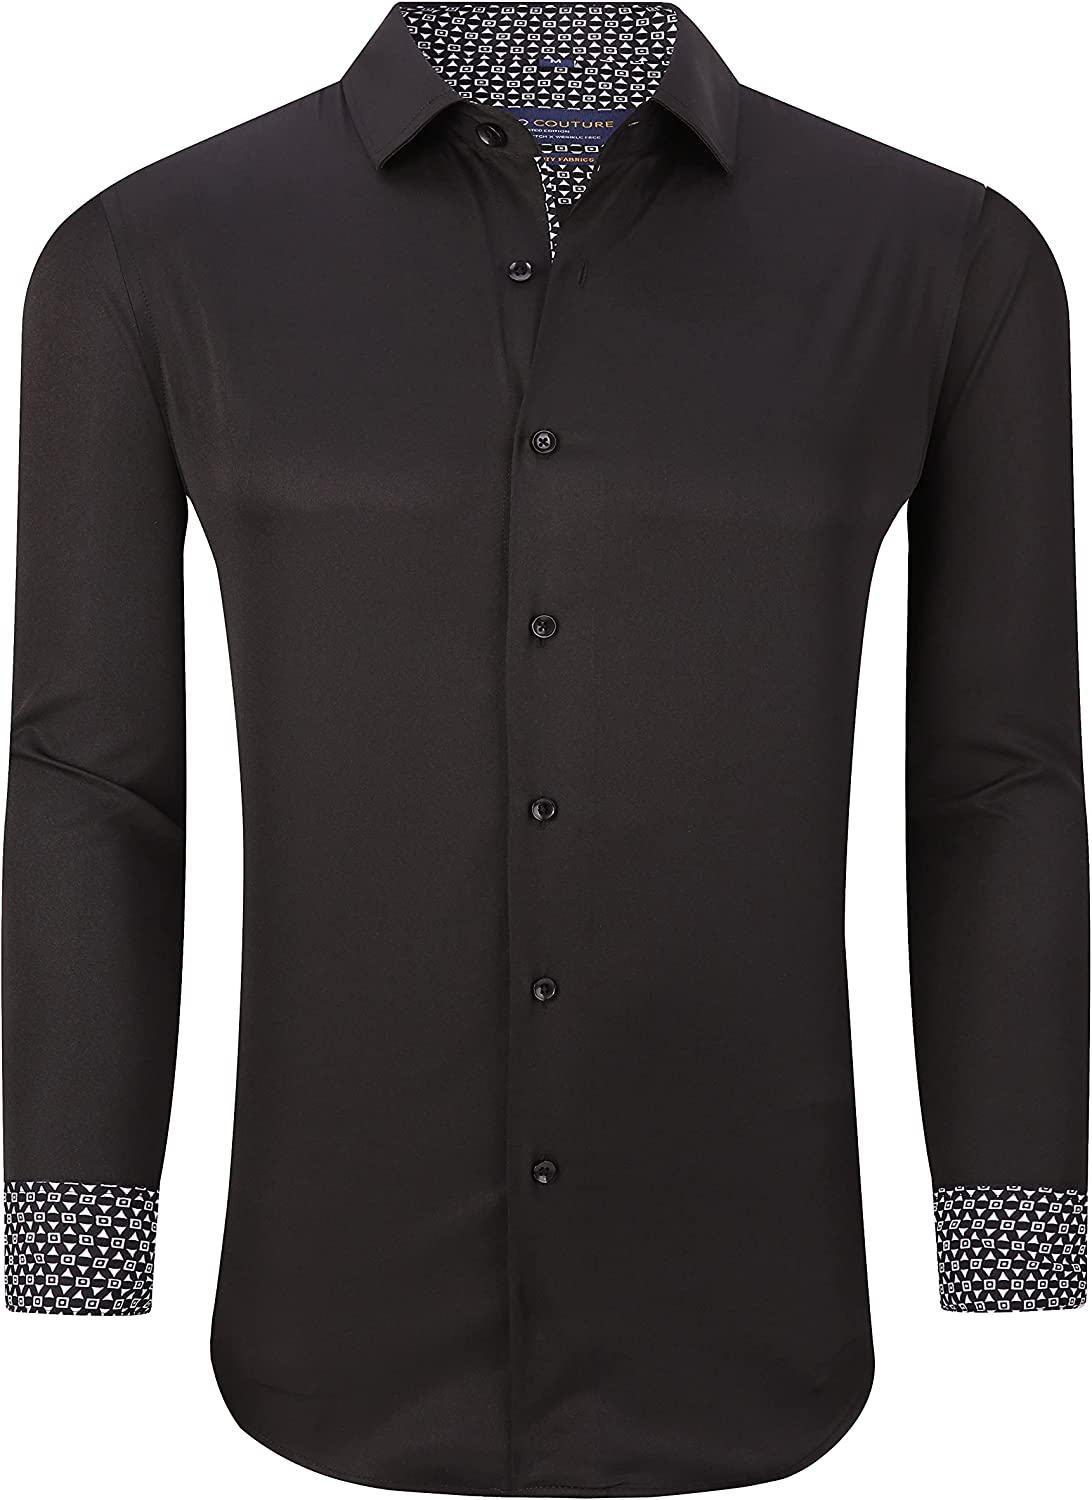 Suslo Couture Men's Wrinkle Free Perfomrace Stretch Solid Button Down